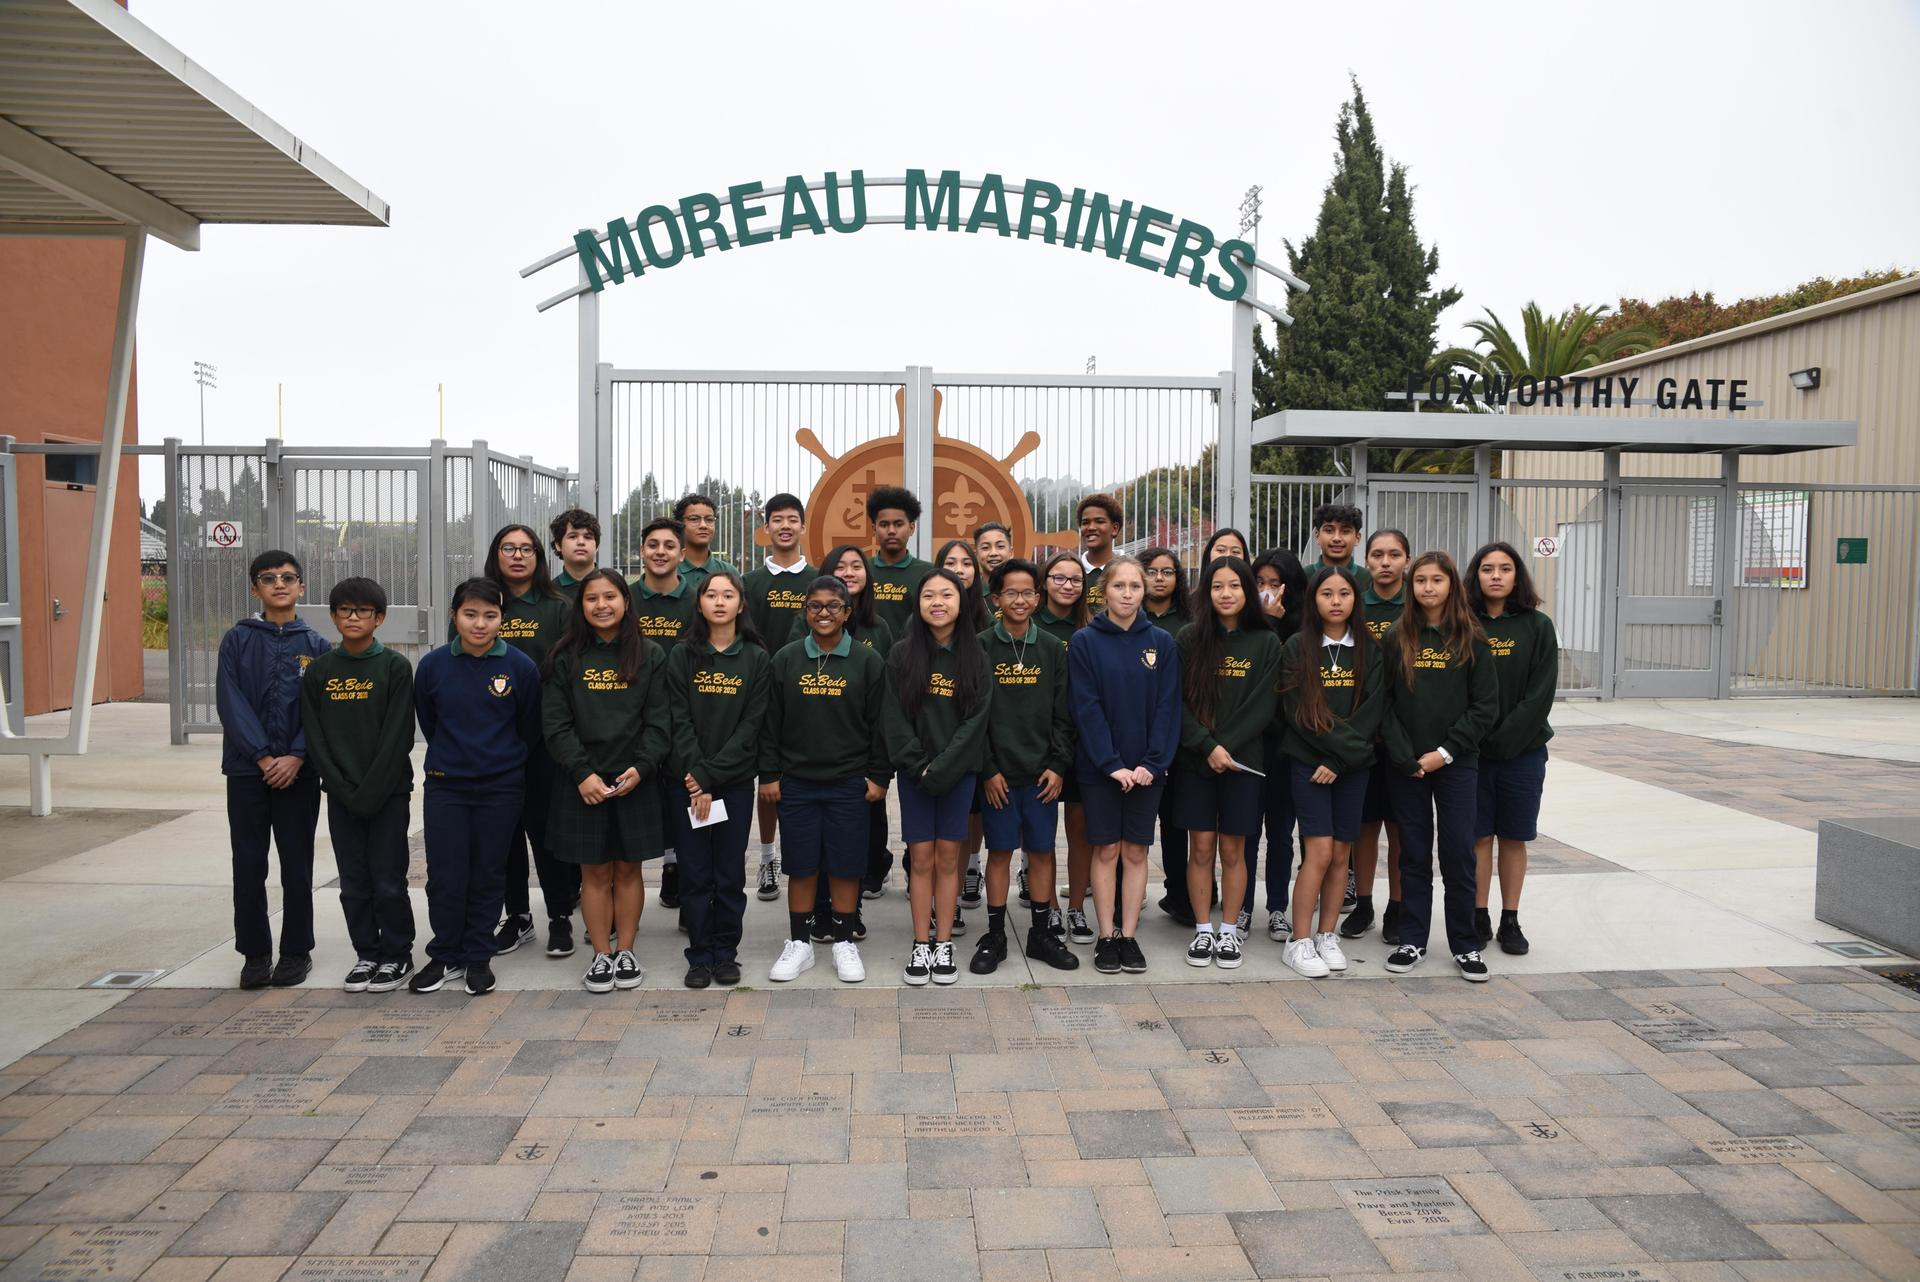 The 8th graders took a field trip to Moreau Catholic High School.